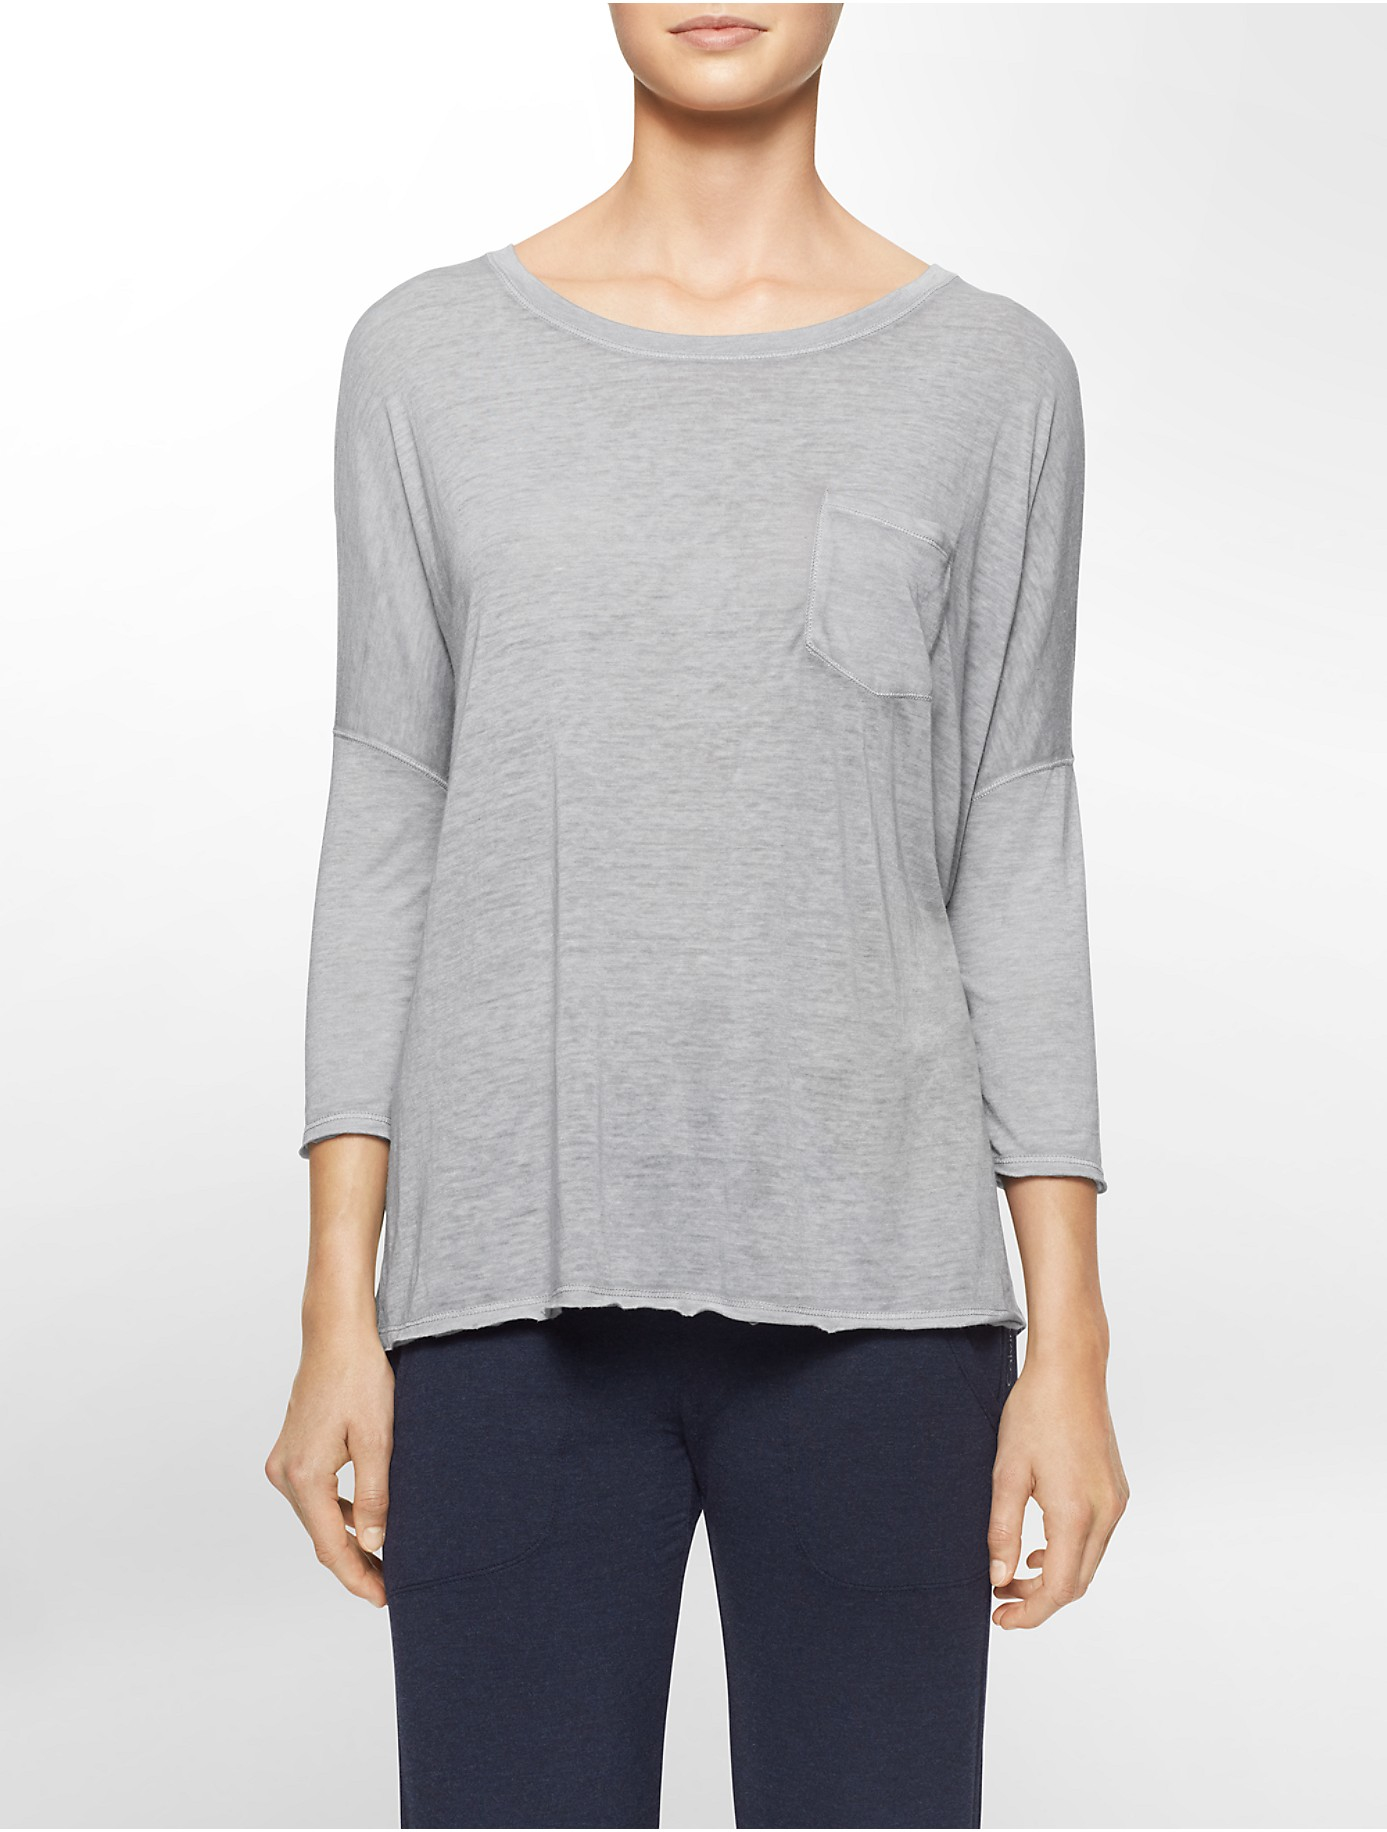 lyst calvin klein performance high low dolman sleeve top in gray. Black Bedroom Furniture Sets. Home Design Ideas